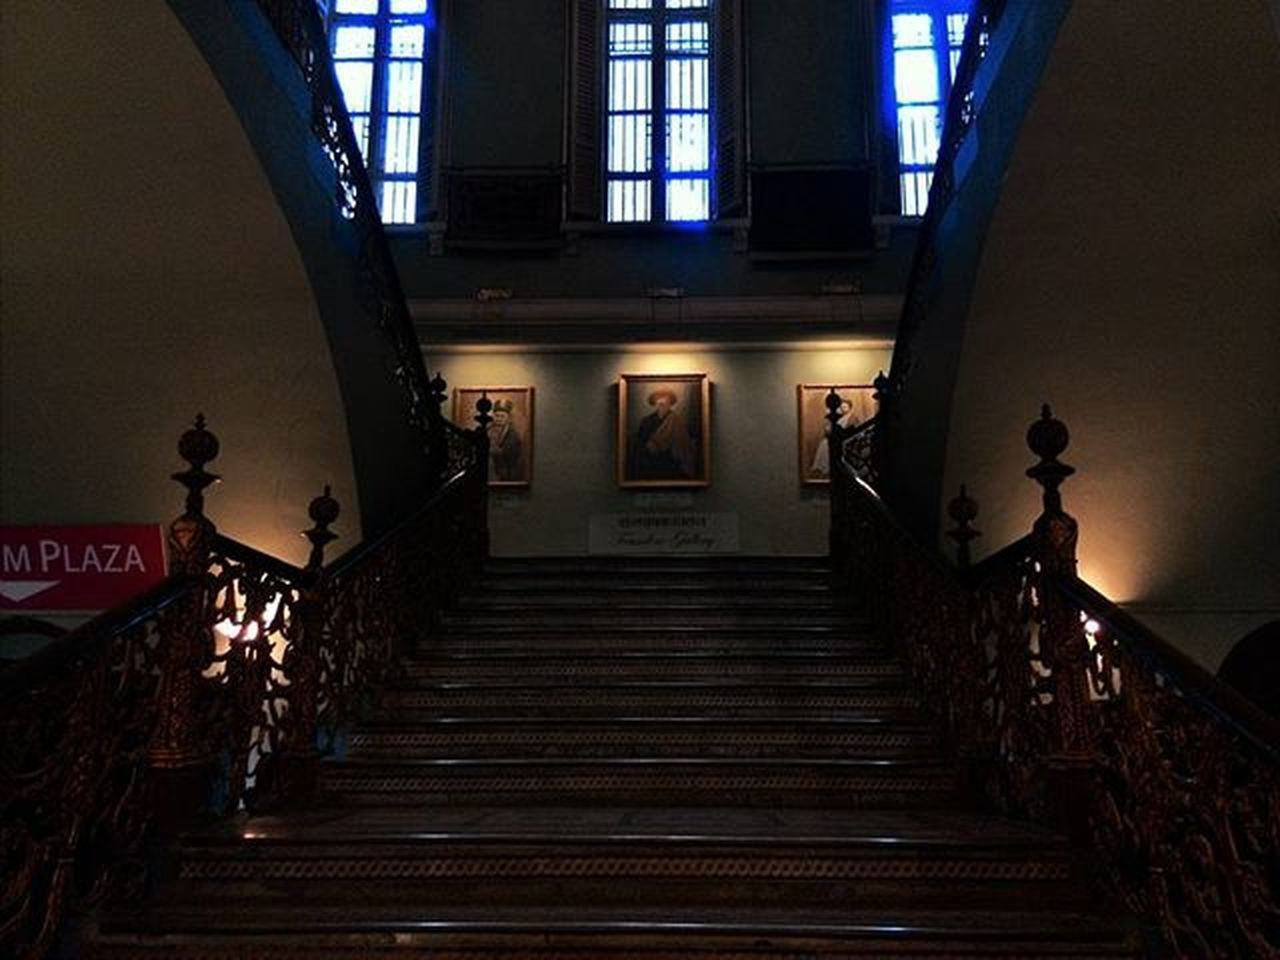 The royal staircase at Dr. Bhau Daji Lad Museum Royal Staircase Stairs Windows Lights Shadows Photoframes Beautiful Drbhaudajiladmuseum Ig_Mumbai Ig_maharashtra Ig_india Ig_worldclub Repostingindia Indian_photographers India_gram Igers Asus Zenfone Zenfoneglobal Asusglobal Seewhatotherscantsee Indiaunseen Incredibleindiaofficial _soi _soimumbai instagram